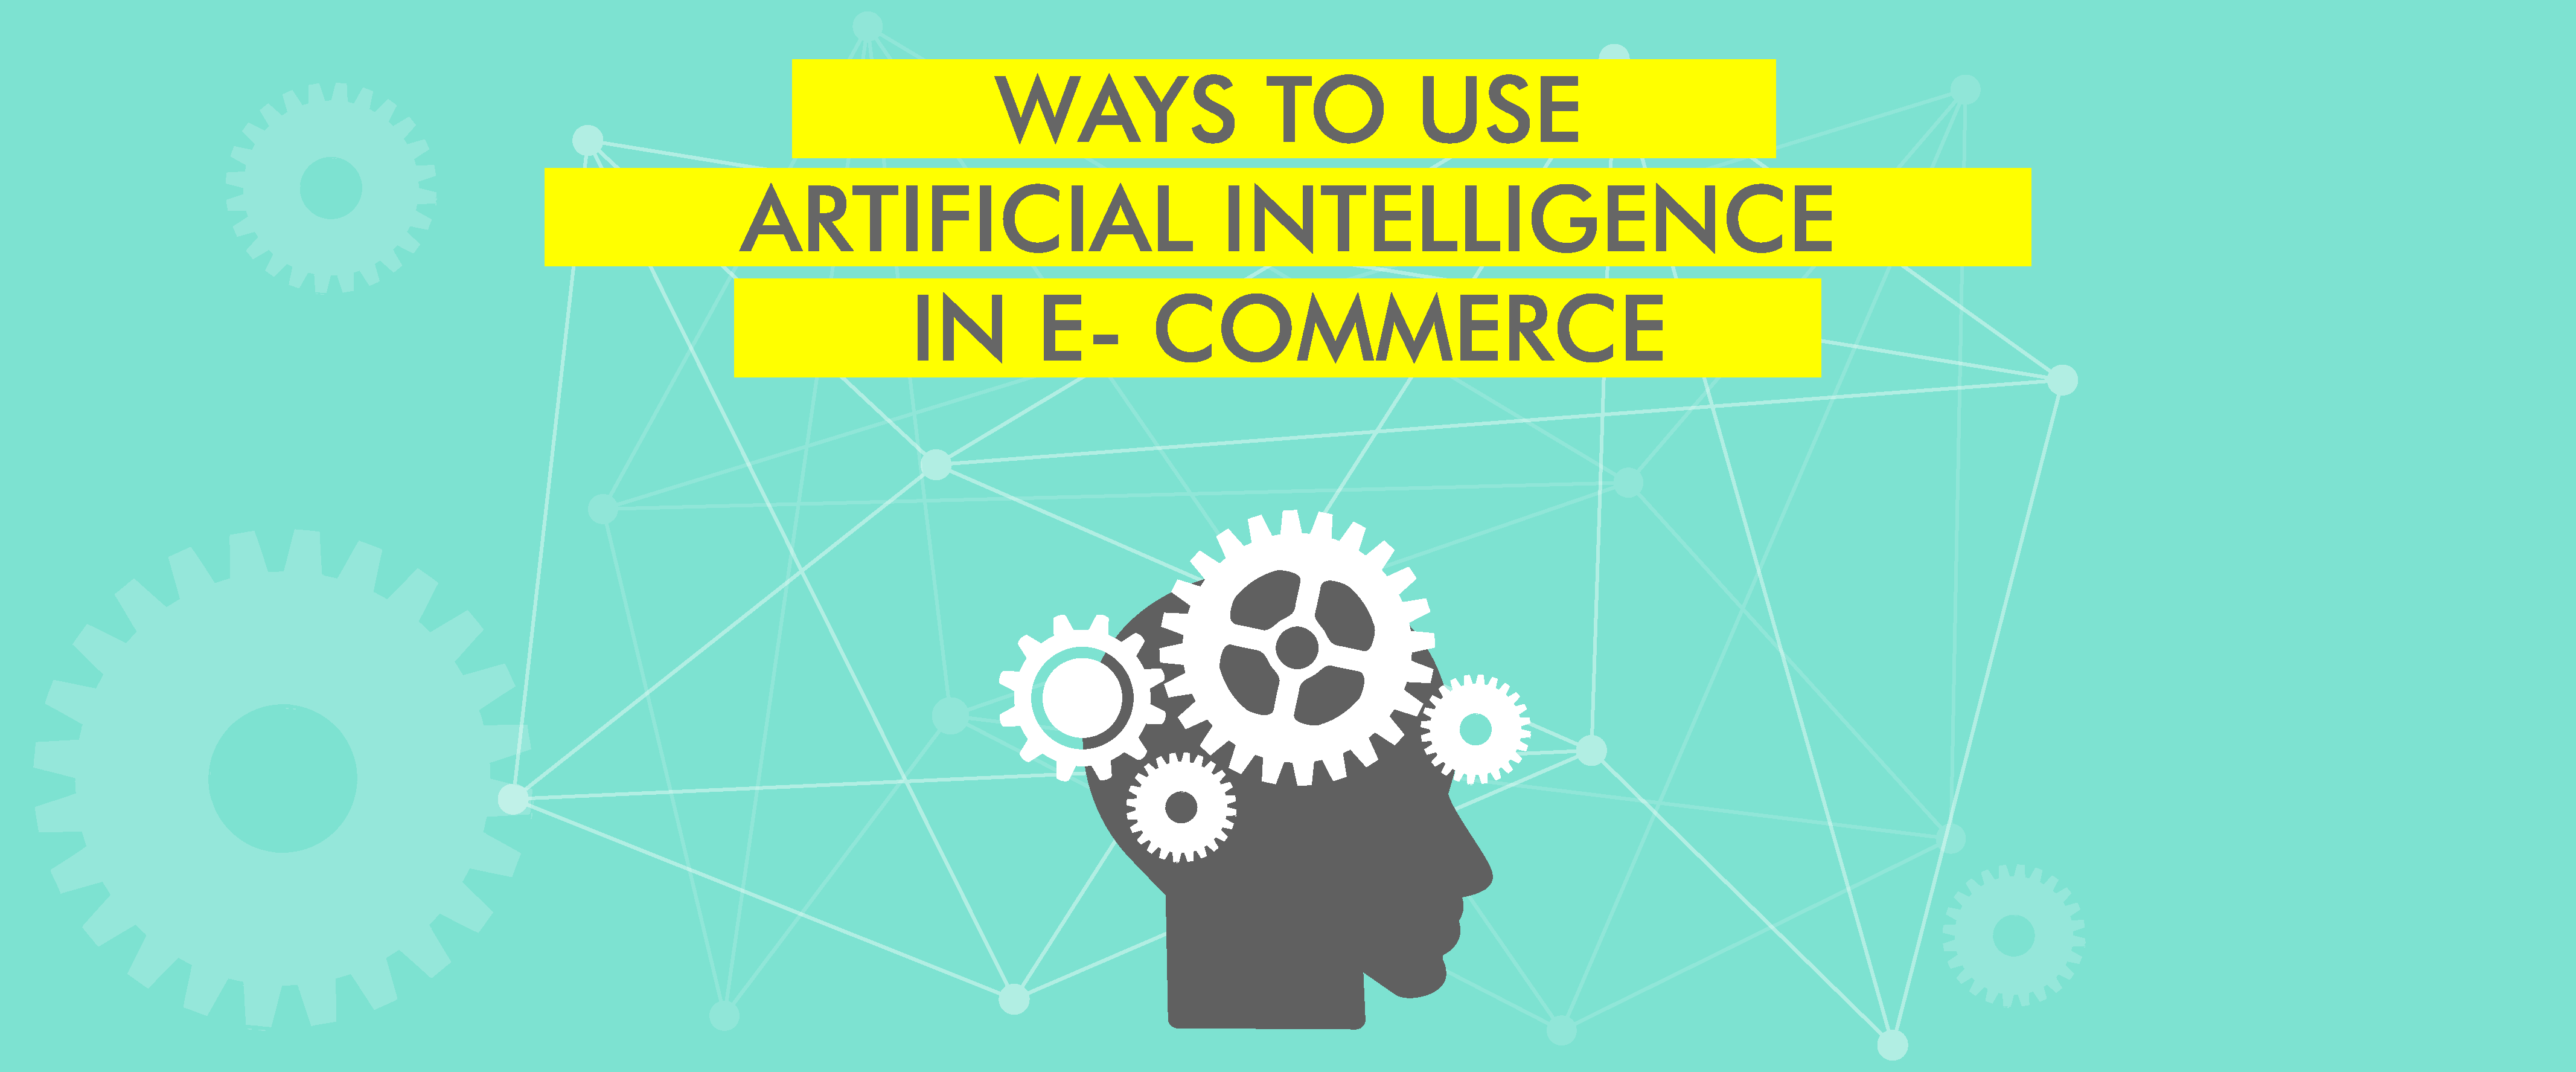 Ways to Use Artificial Intelligence in E-commerce